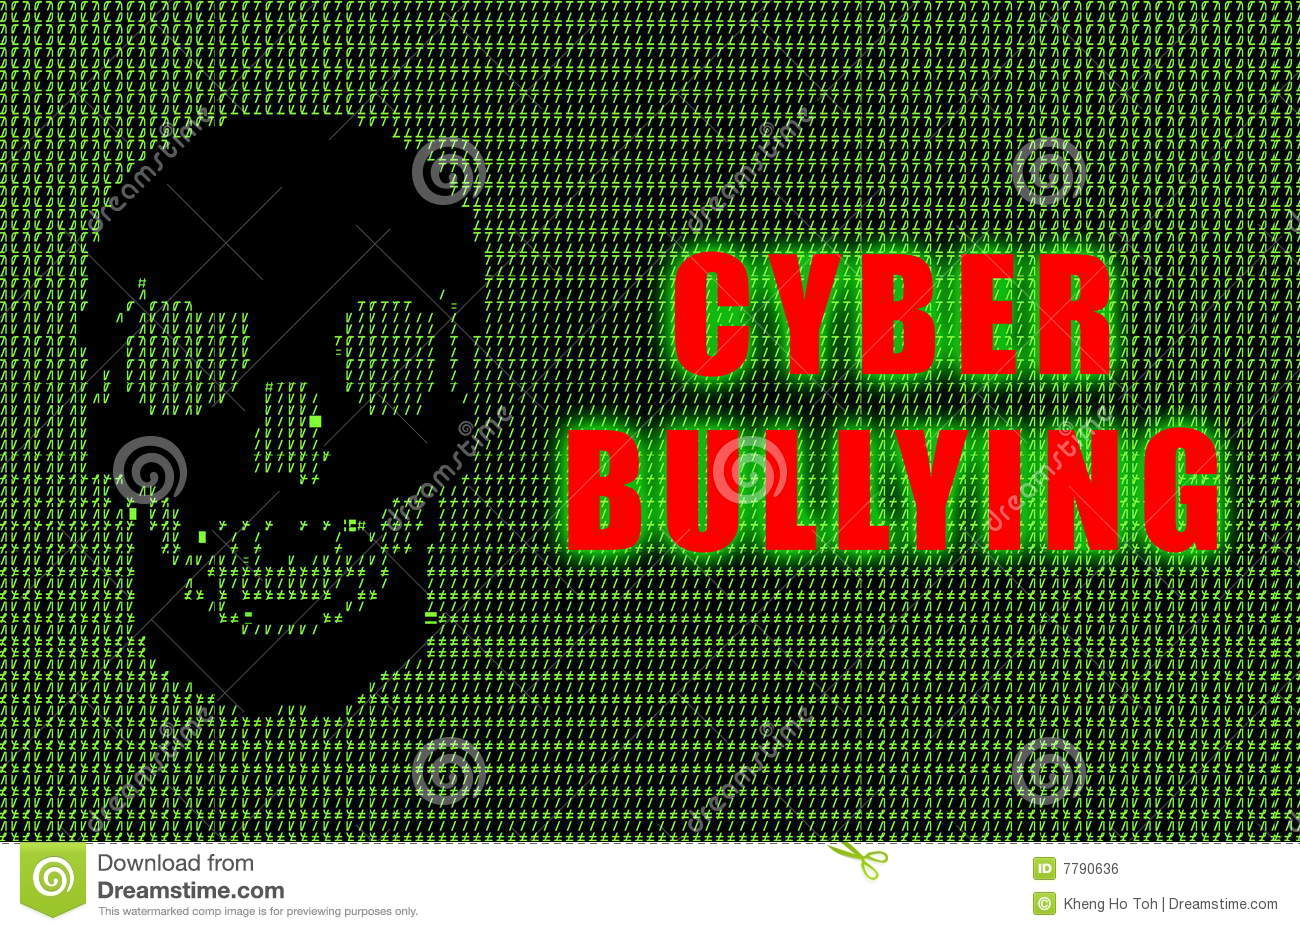 Online 3d Room Design Cyber Bullying Royalty Free Stock Image Image 7790636